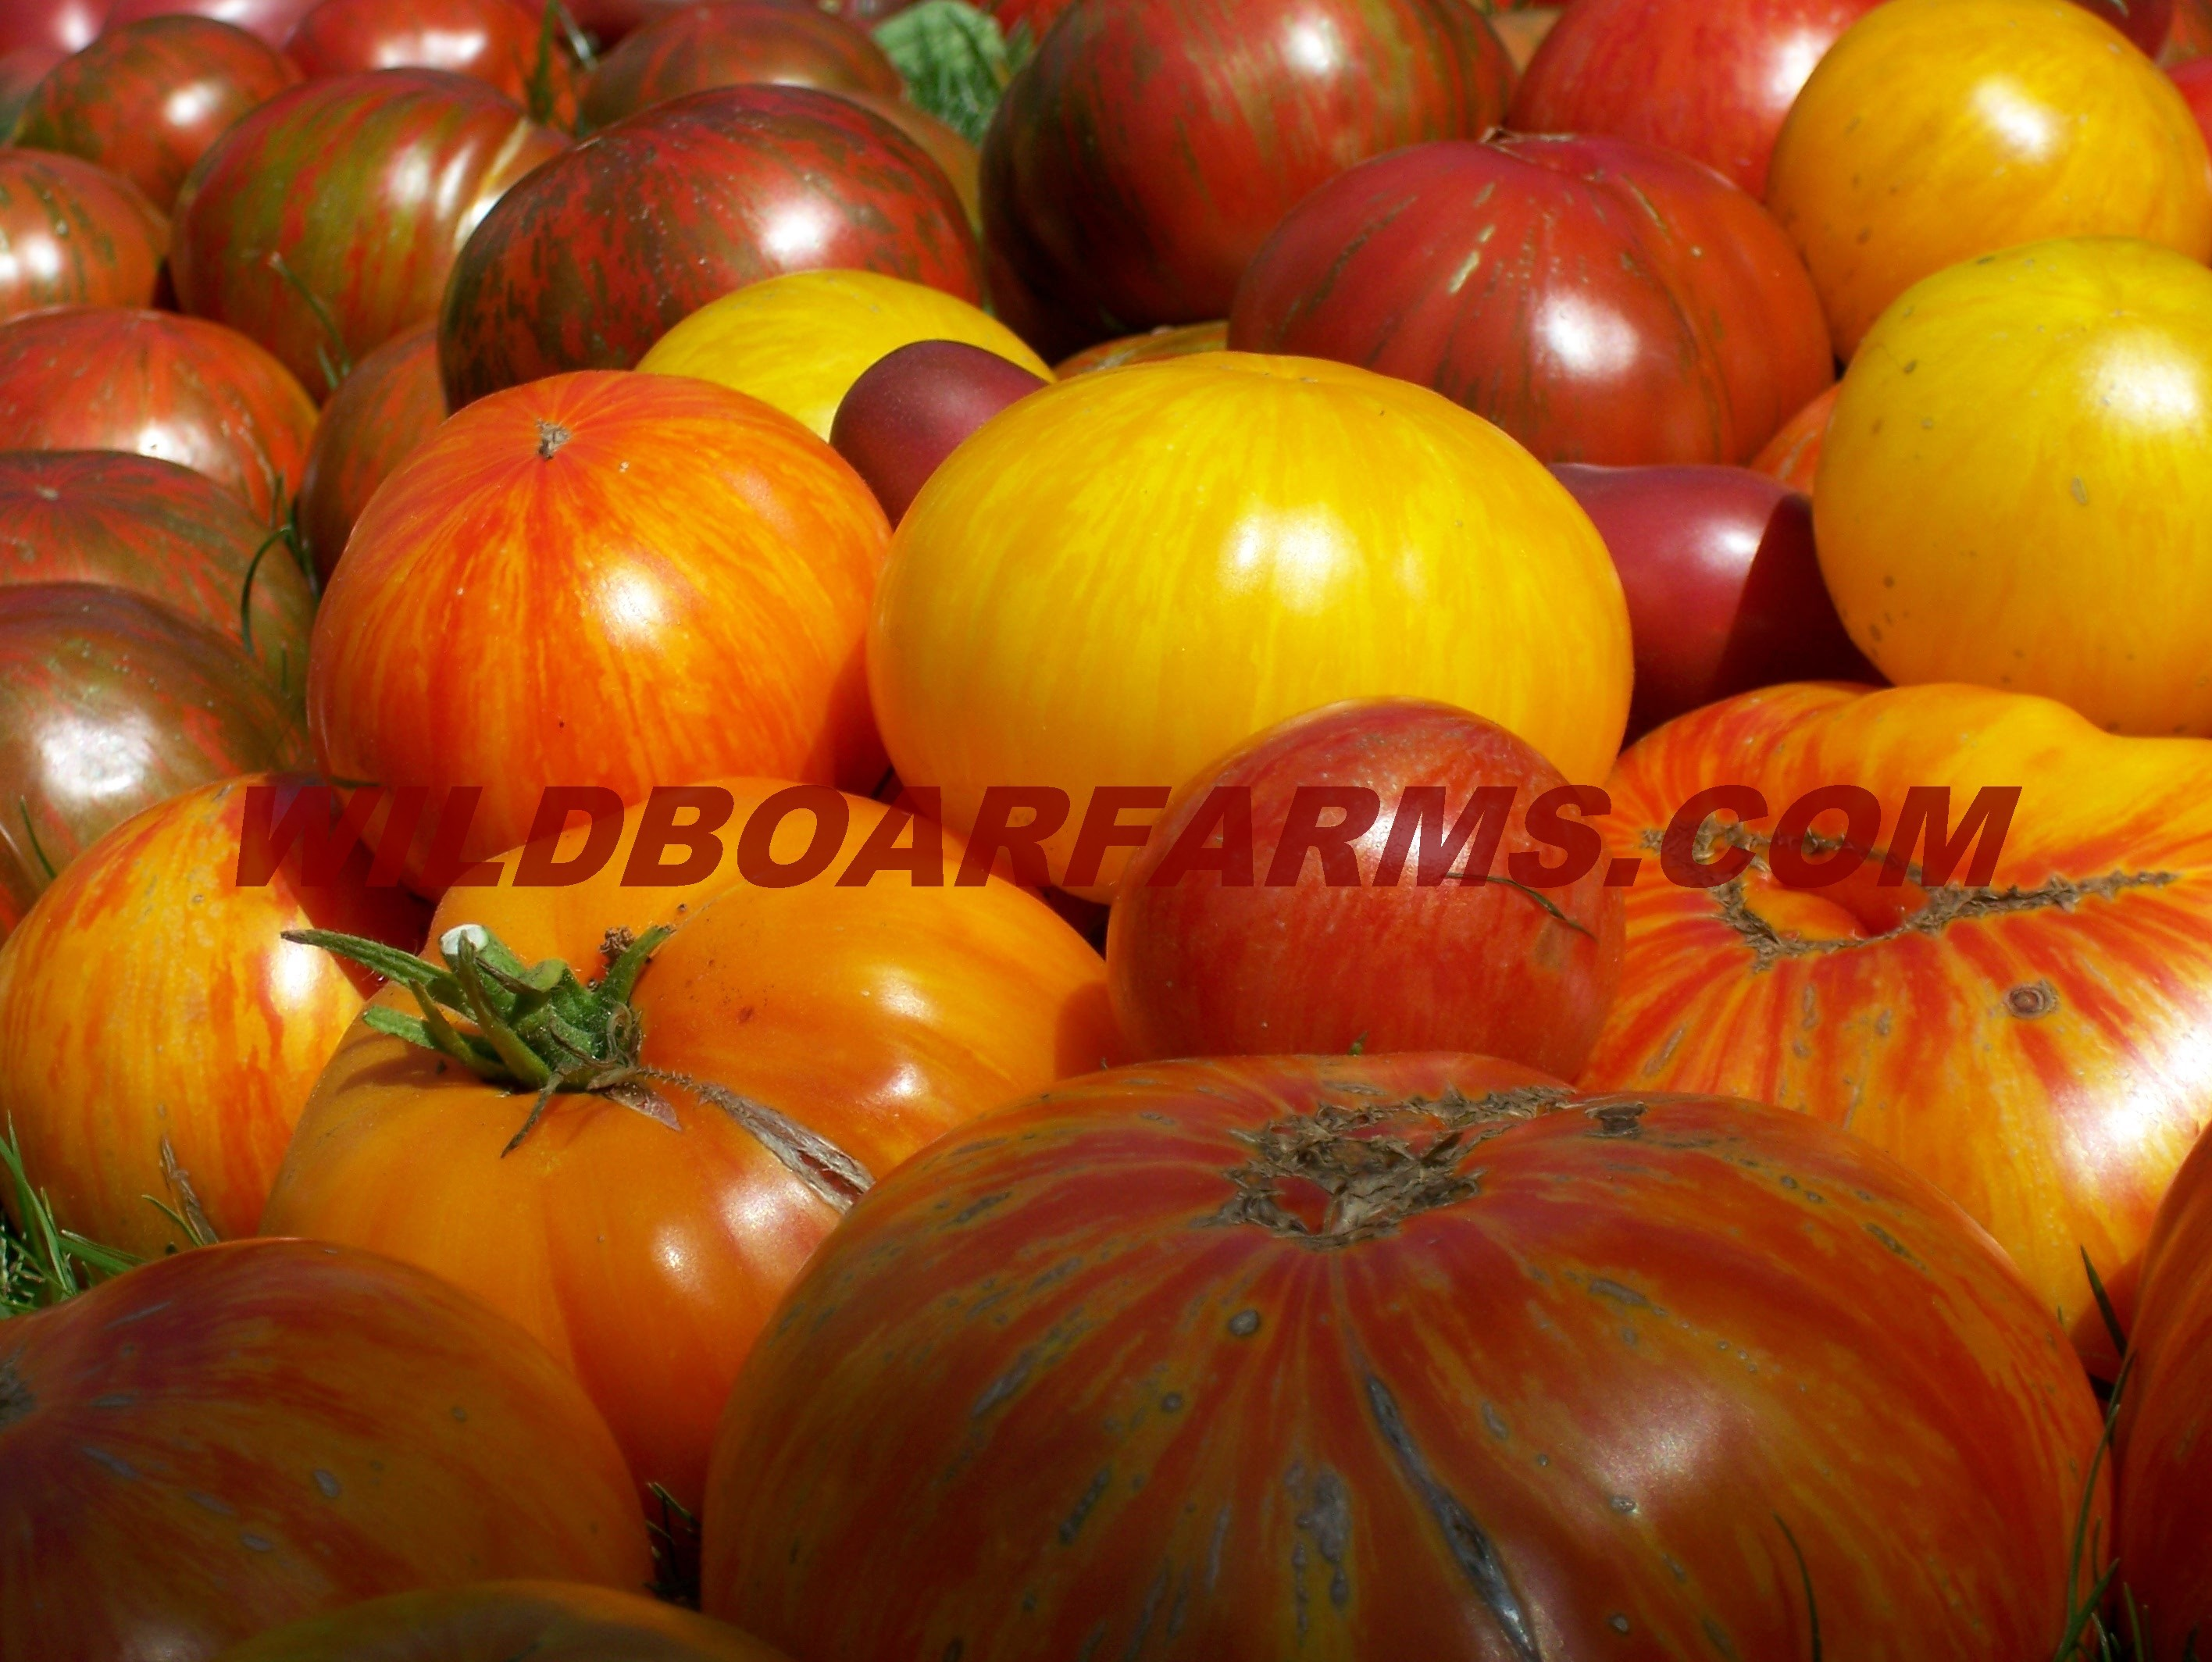 Wild Boar Farms Tomatoes 08